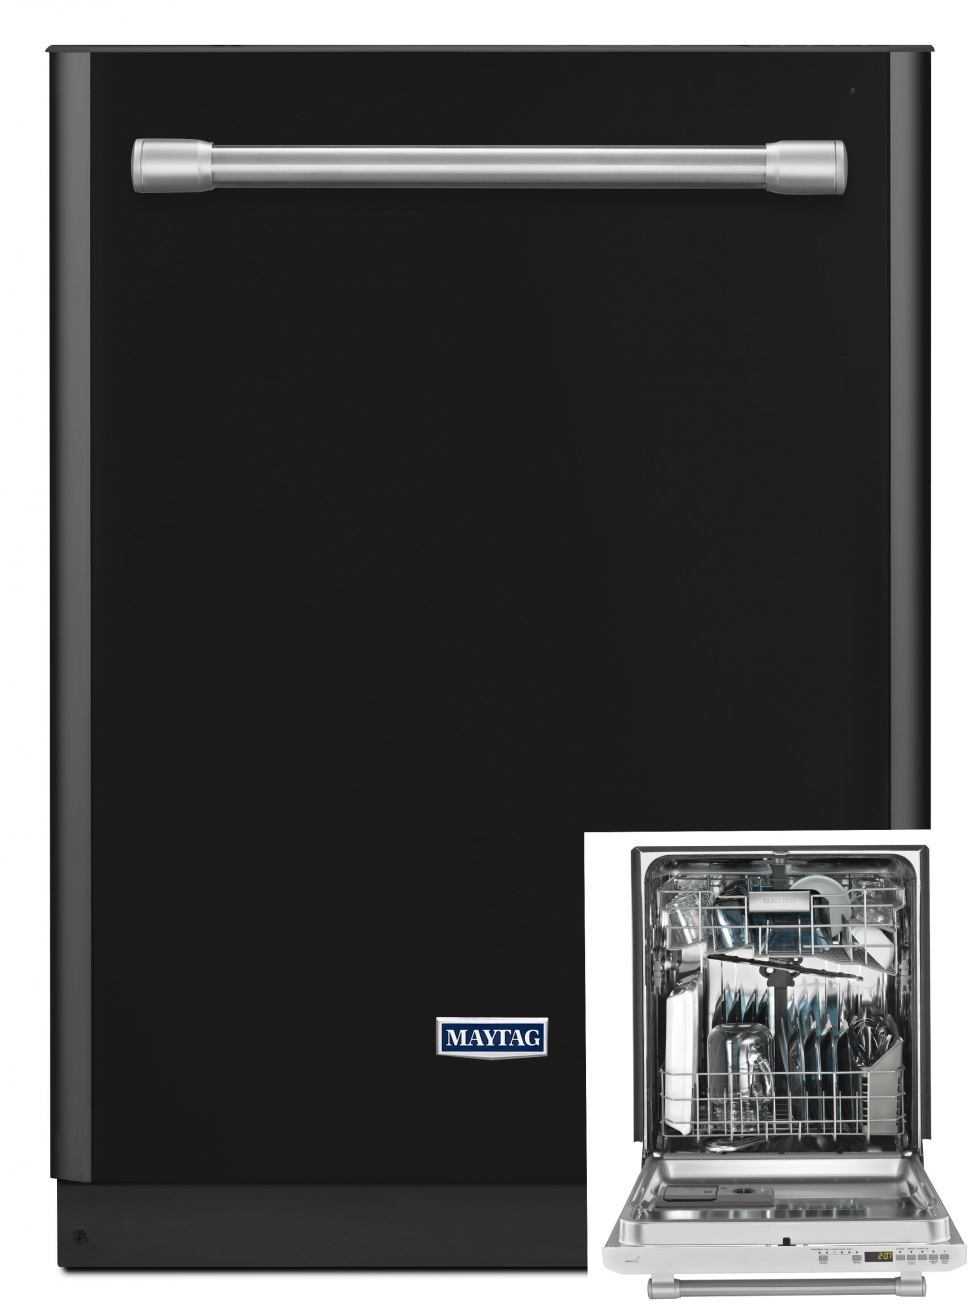 Maytag Durable Dishwasher Black